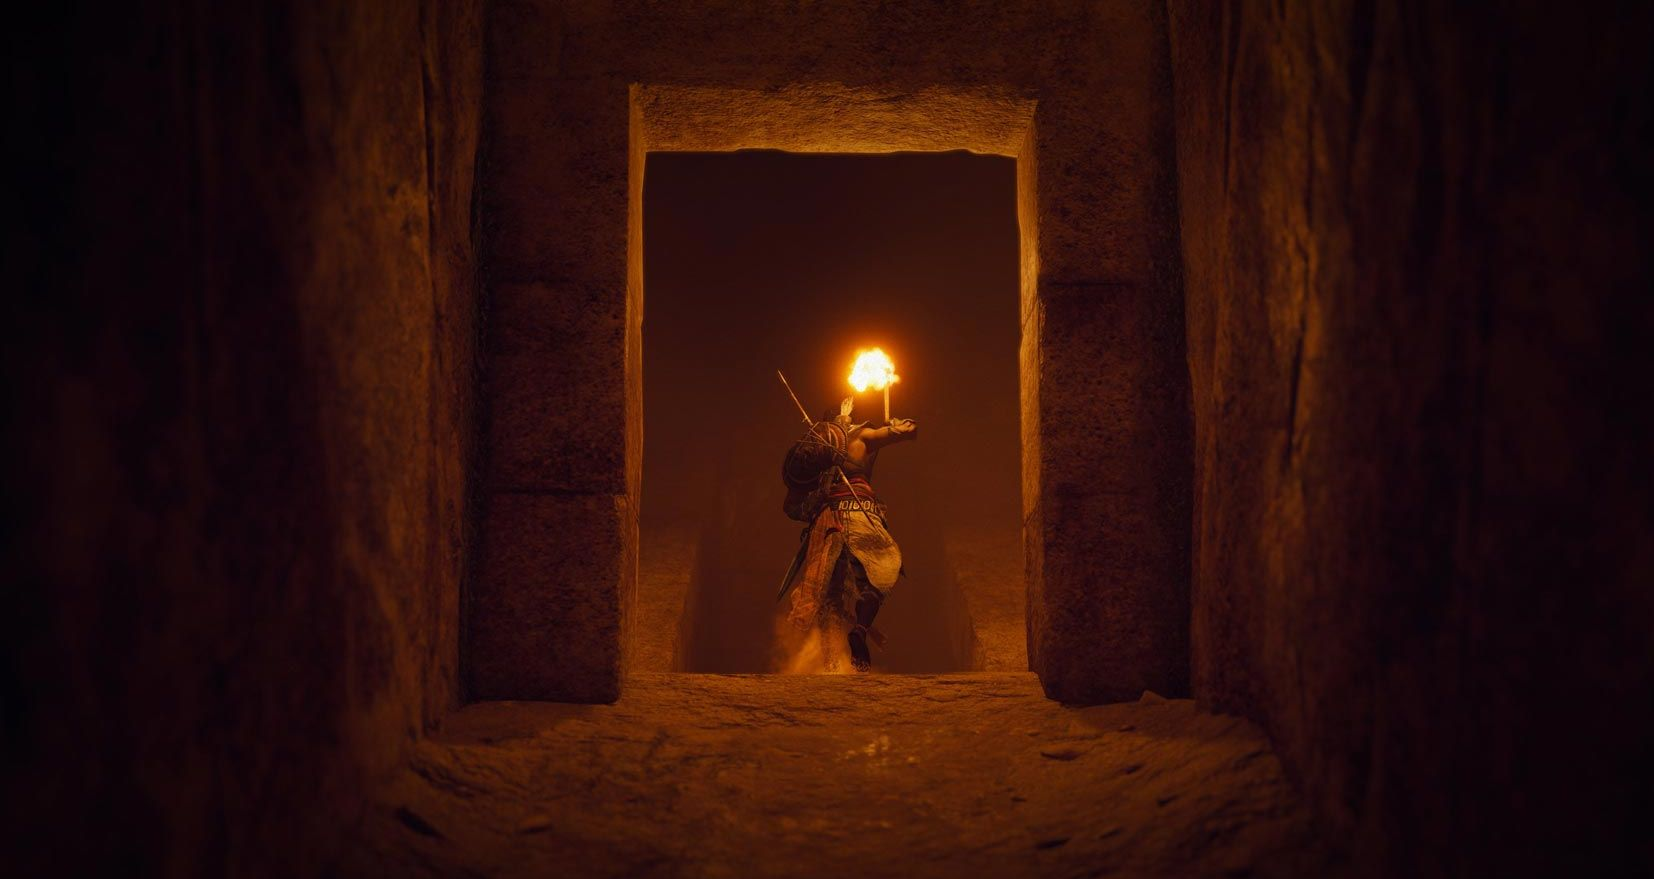 Assassin's Creed Origins is getting a New Game Plus mode